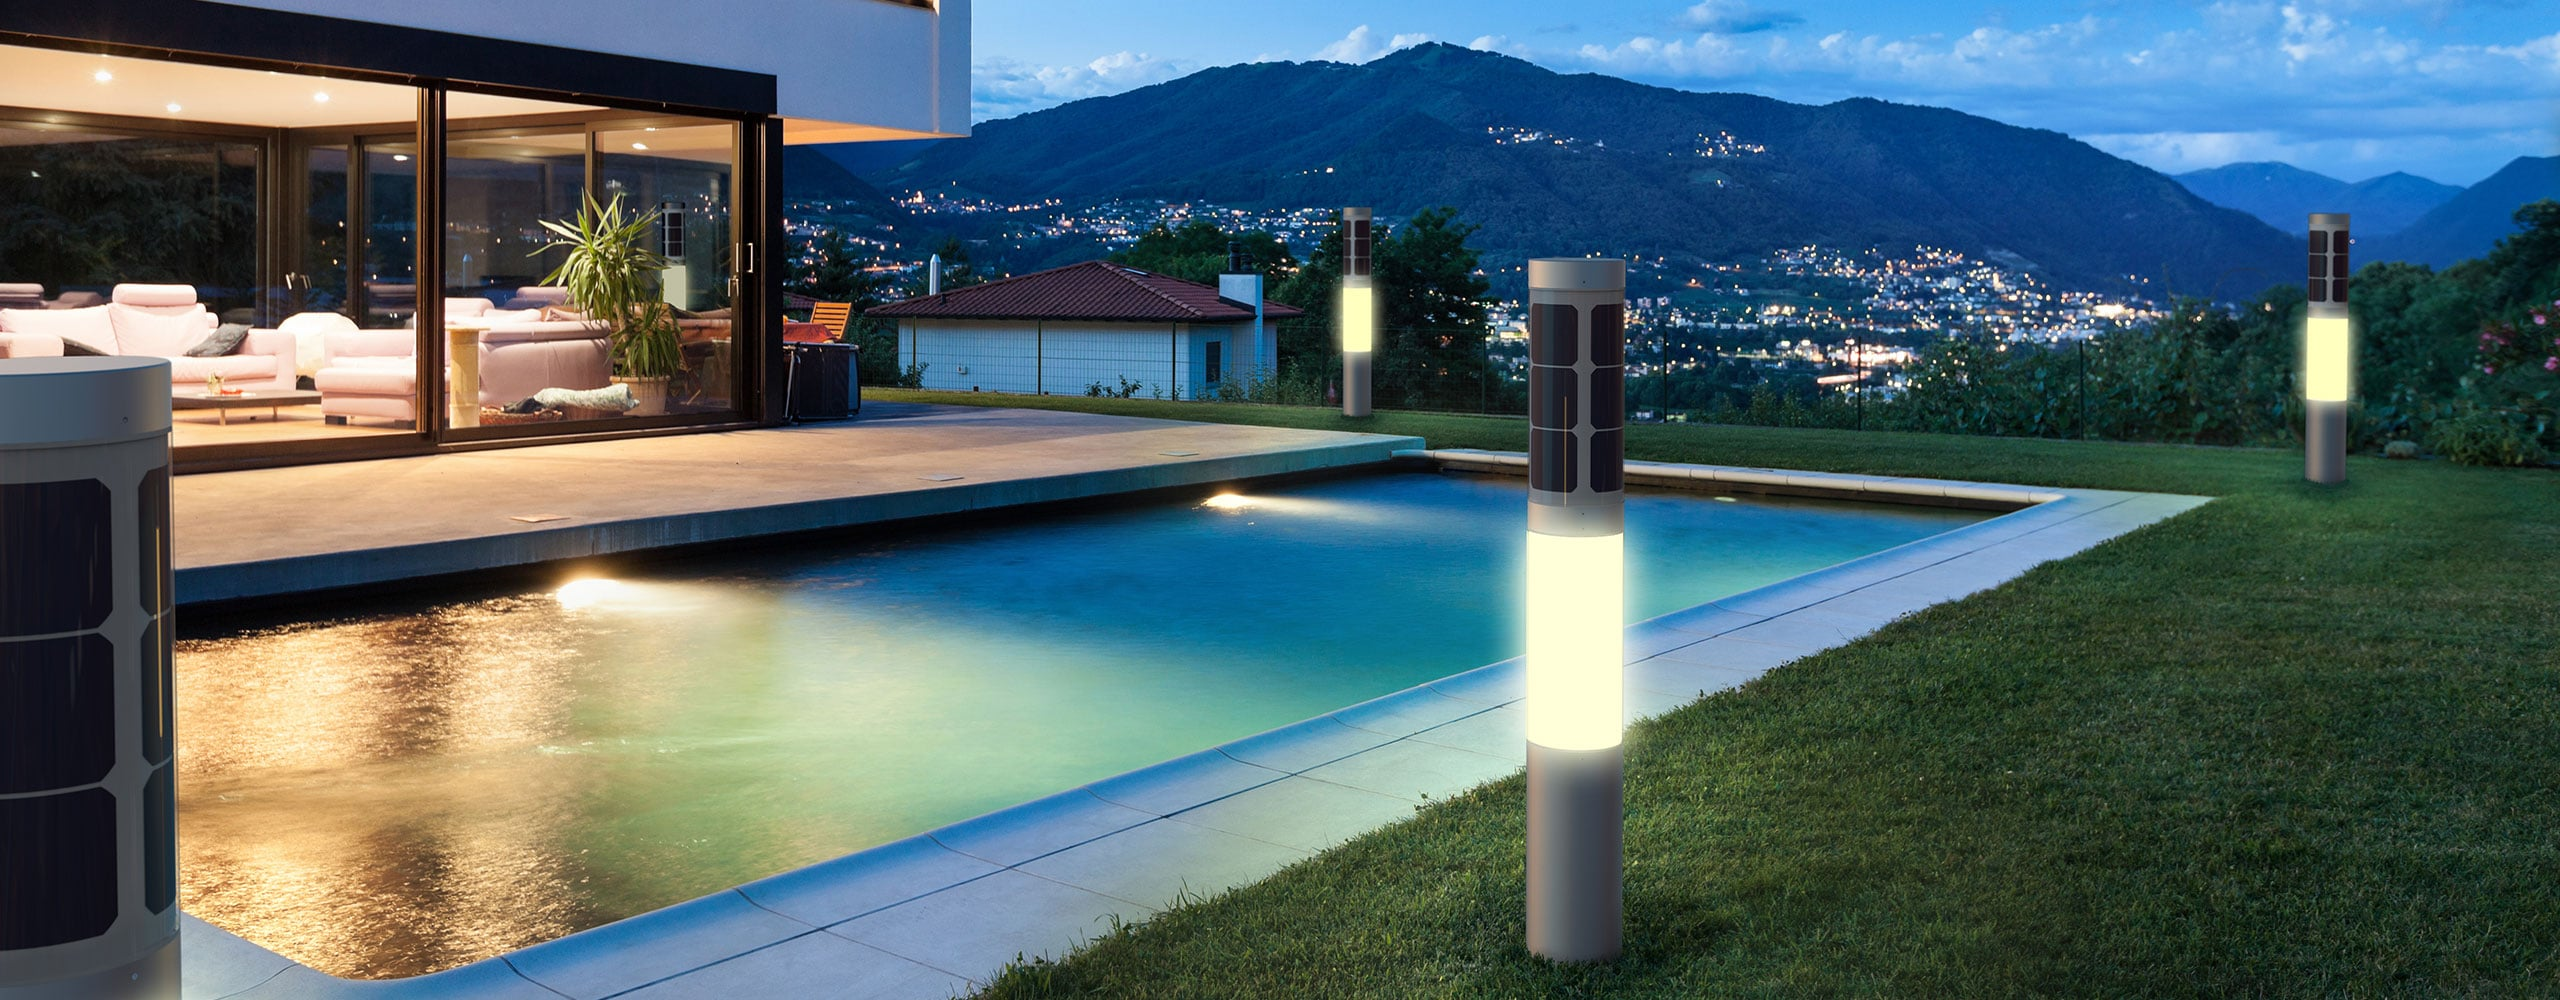 about unique ideas solar outdoor within best for lighting creative lights ward landscaping